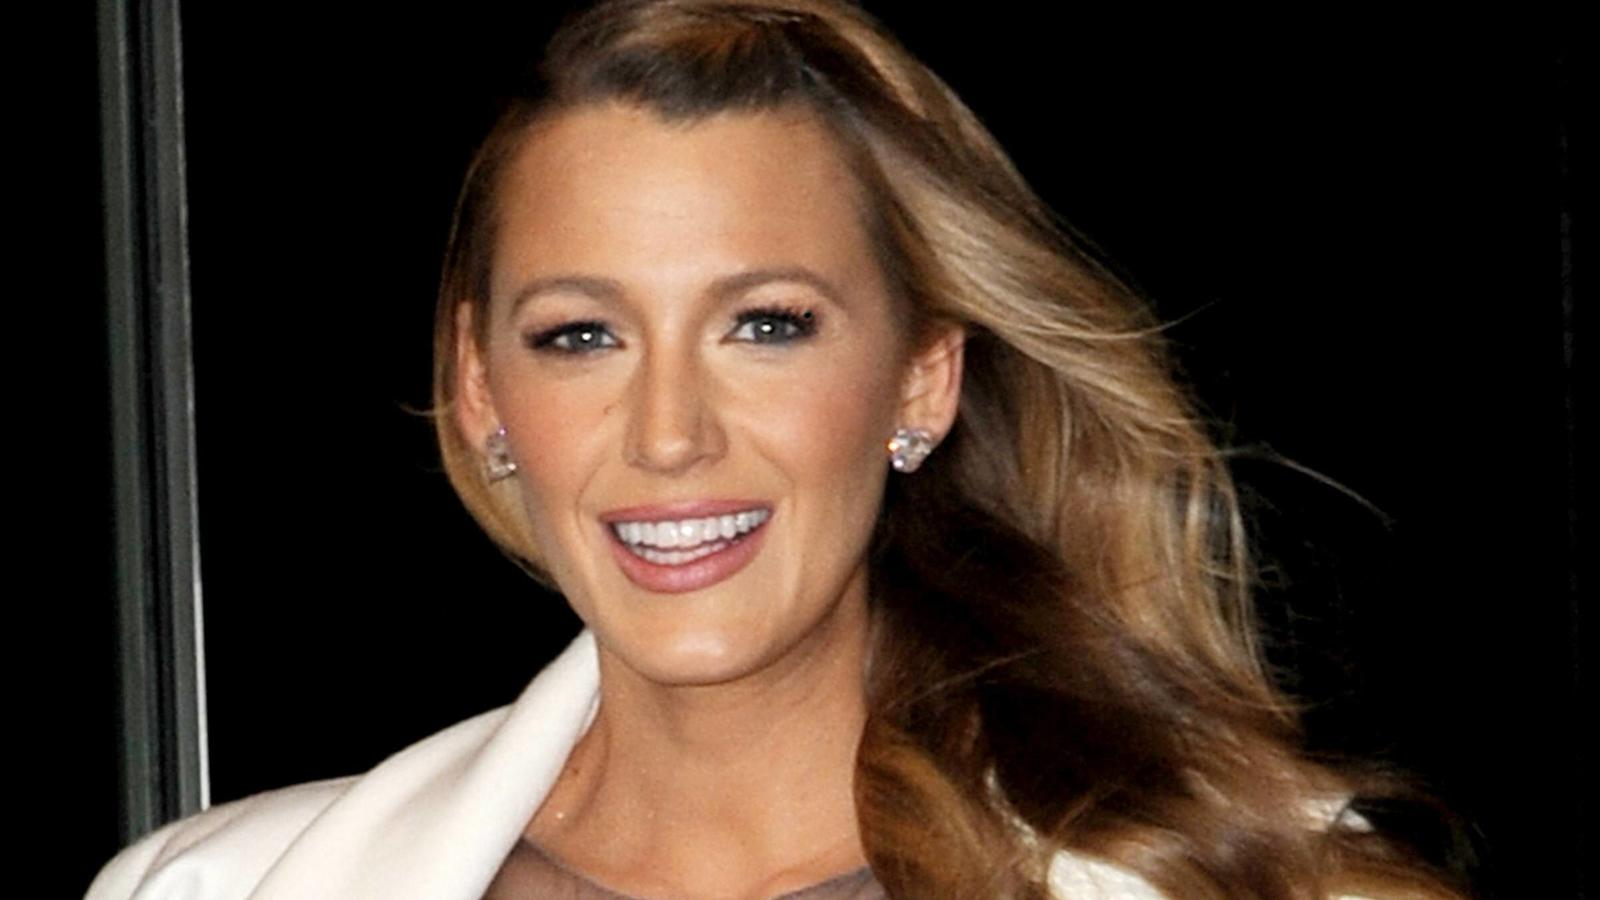 Blake Lively was seen in New York City. Blake Lively New York United States PUBLICATIONxINxGERxSUIxAUTxONLY 554793